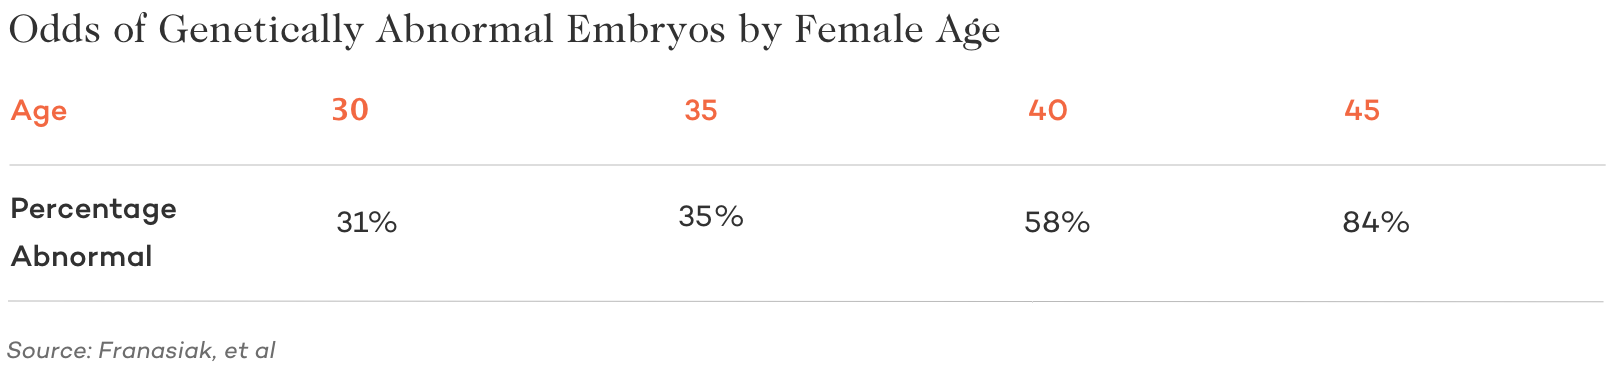 odds of genetically abnormal embryo